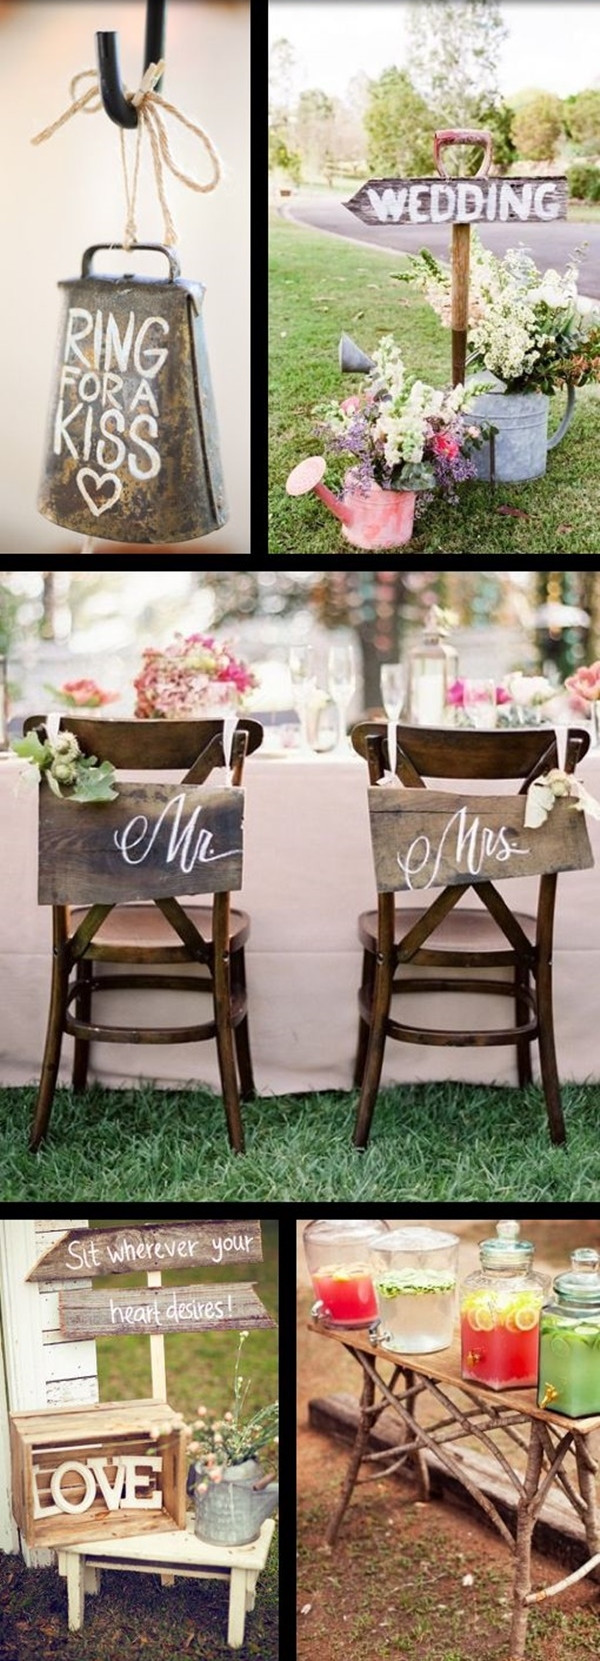 Best ideas about DIY Weddings On A Budget . Save or Pin 30 DIY Weddings Ideas A Bud To Make It Unfor table Now.